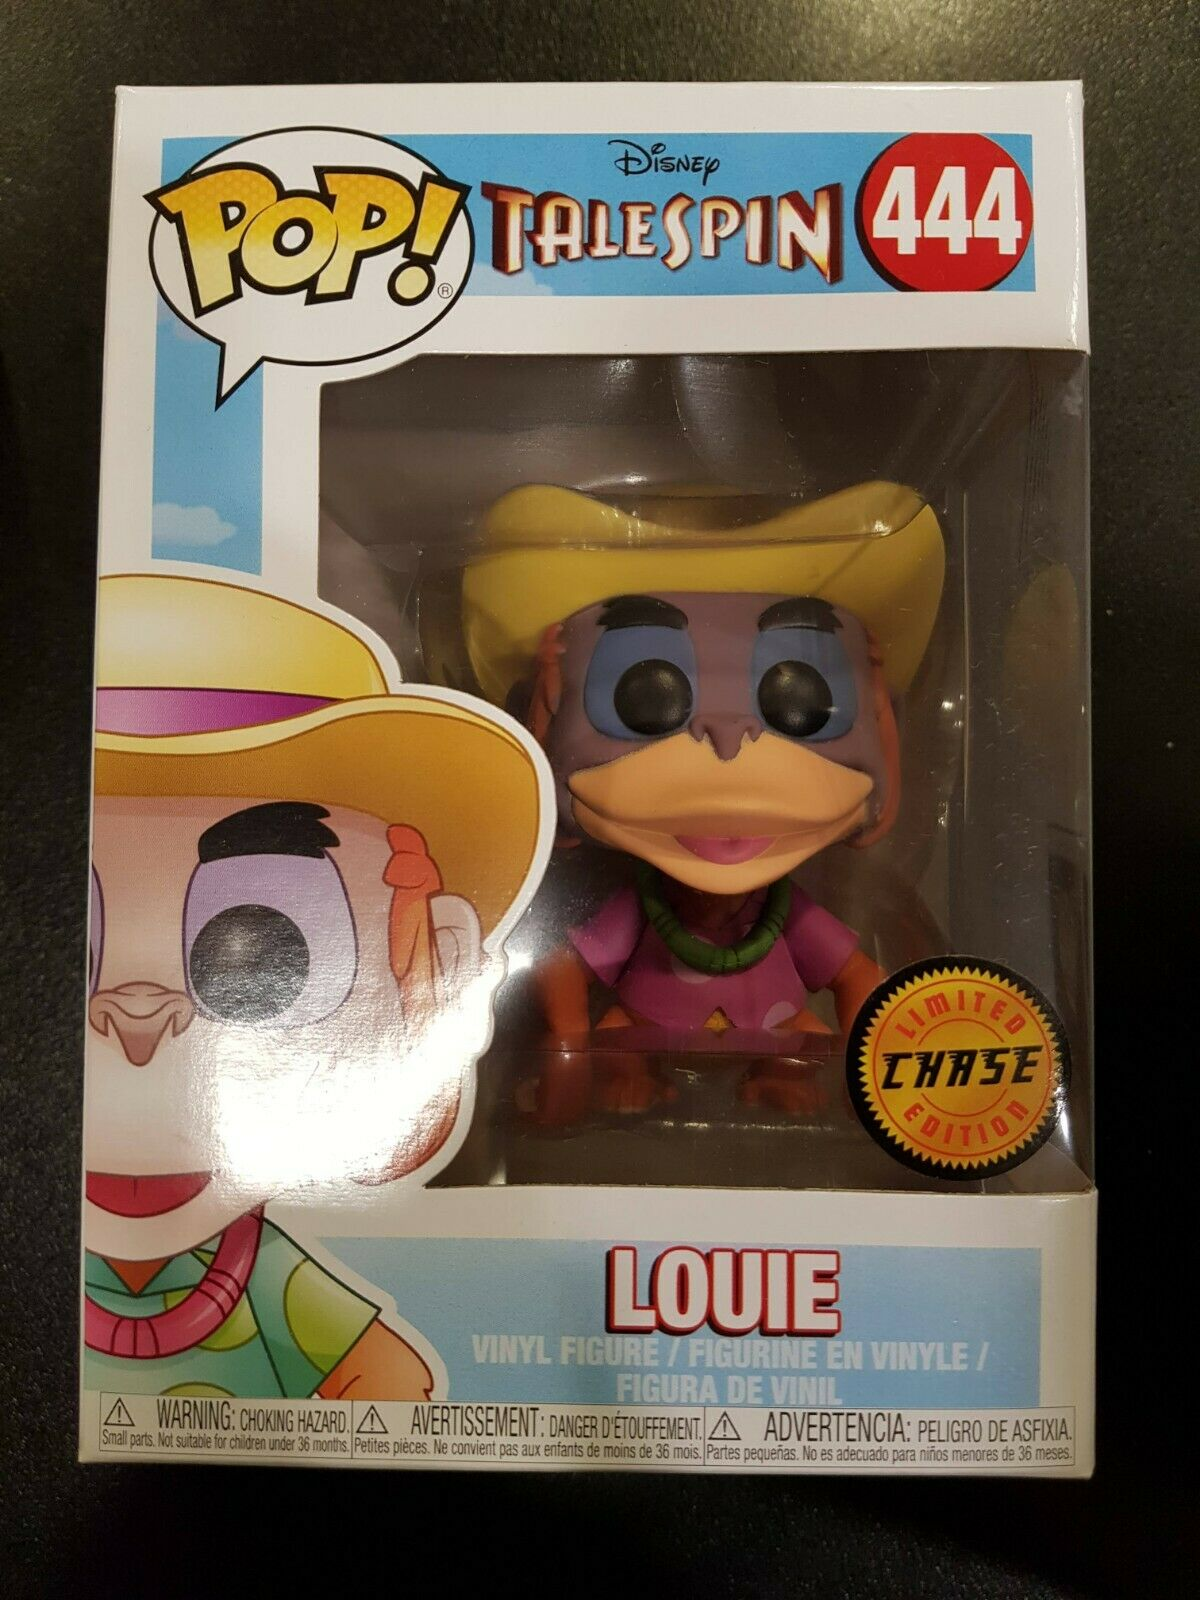 Louie   TailSpin CHASE Pop Vinyl   Very Good Condition